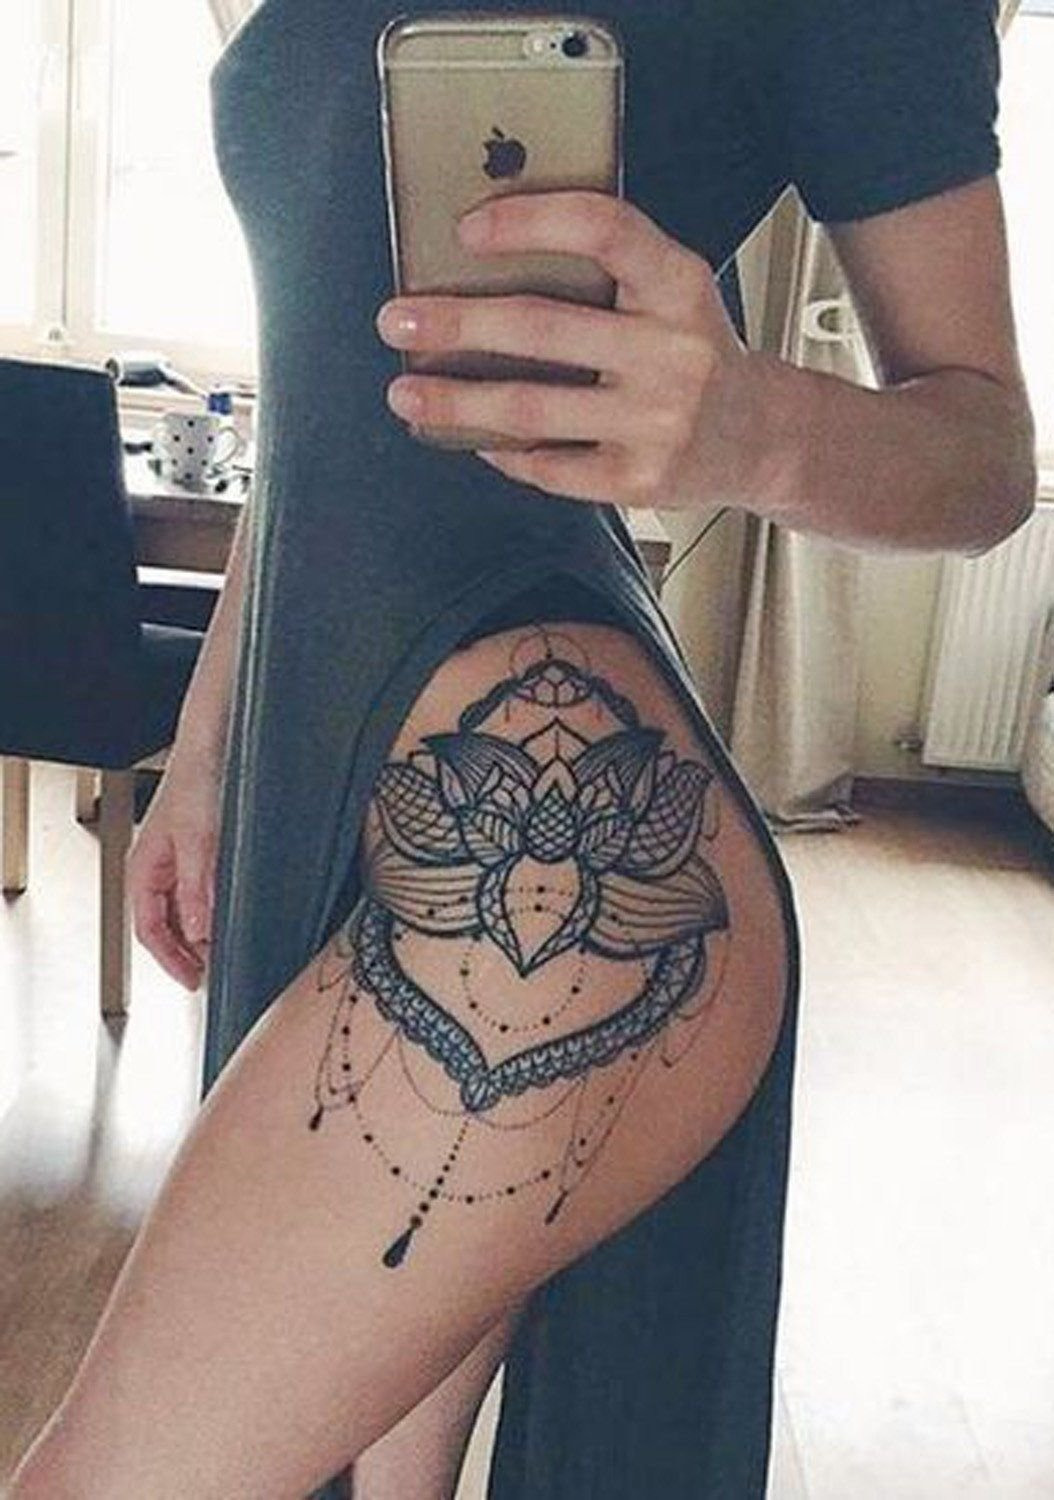 lace lotus flower mandala chandelier hip tattoo placement ideas for